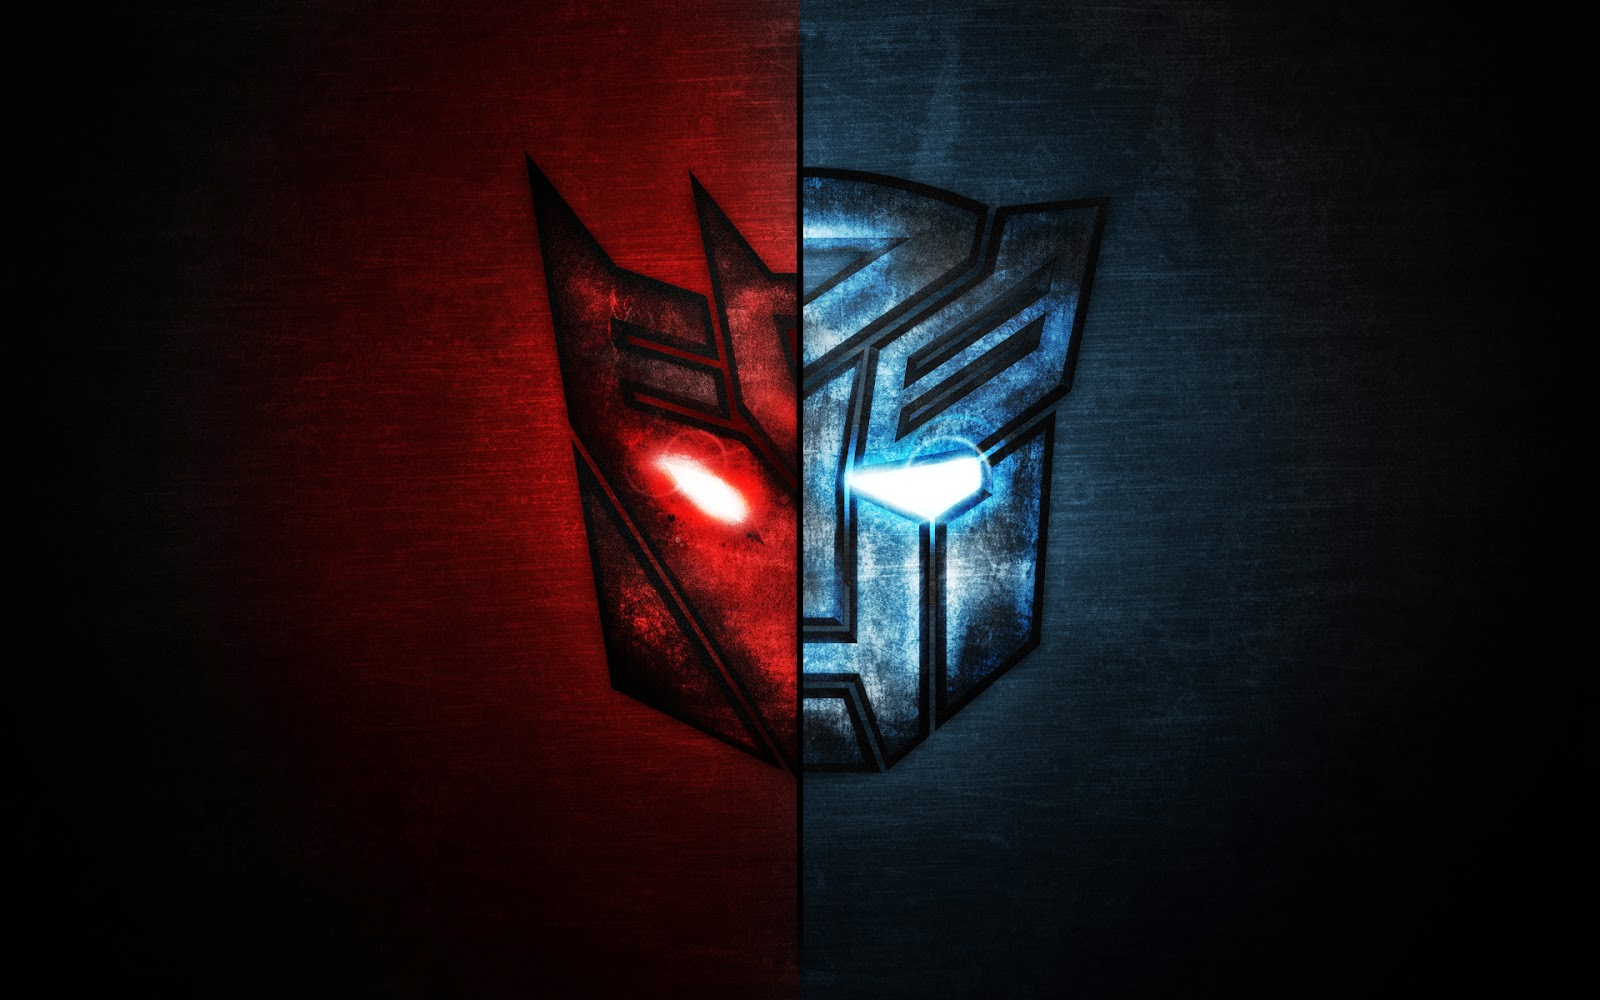 Freak me out transformer wallpapers - Transformers desktop backgrounds ...